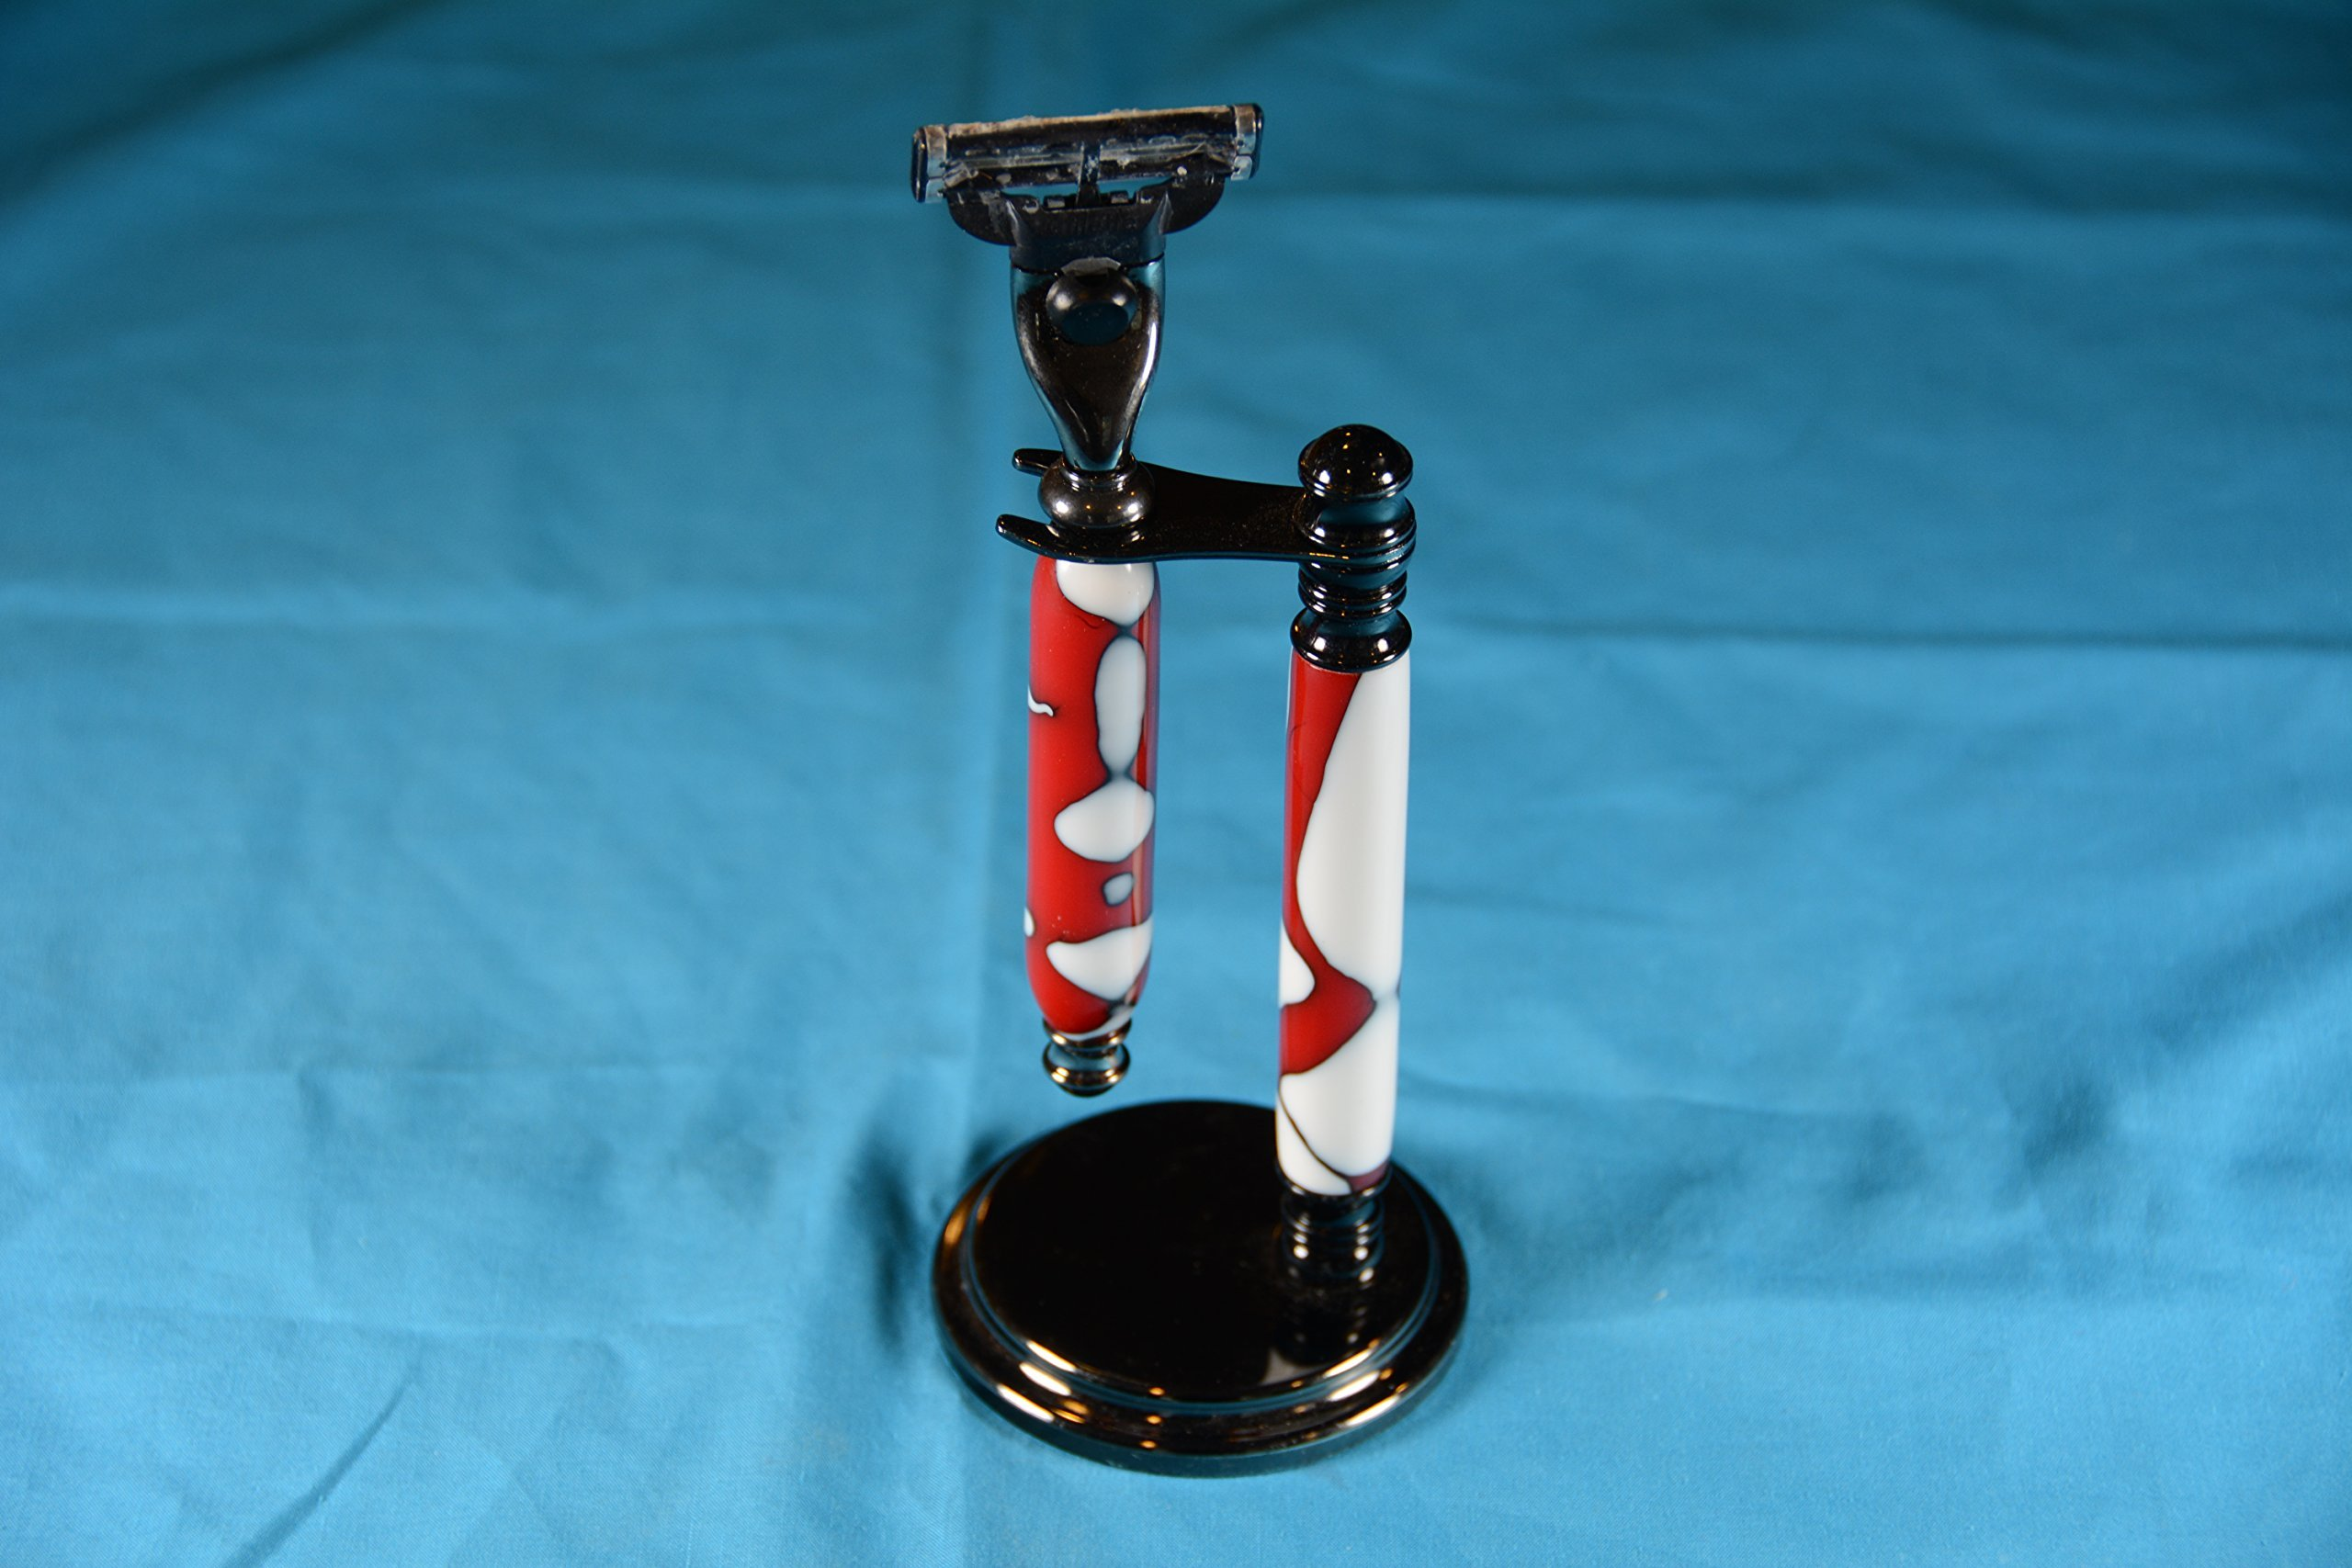 Razor with stand